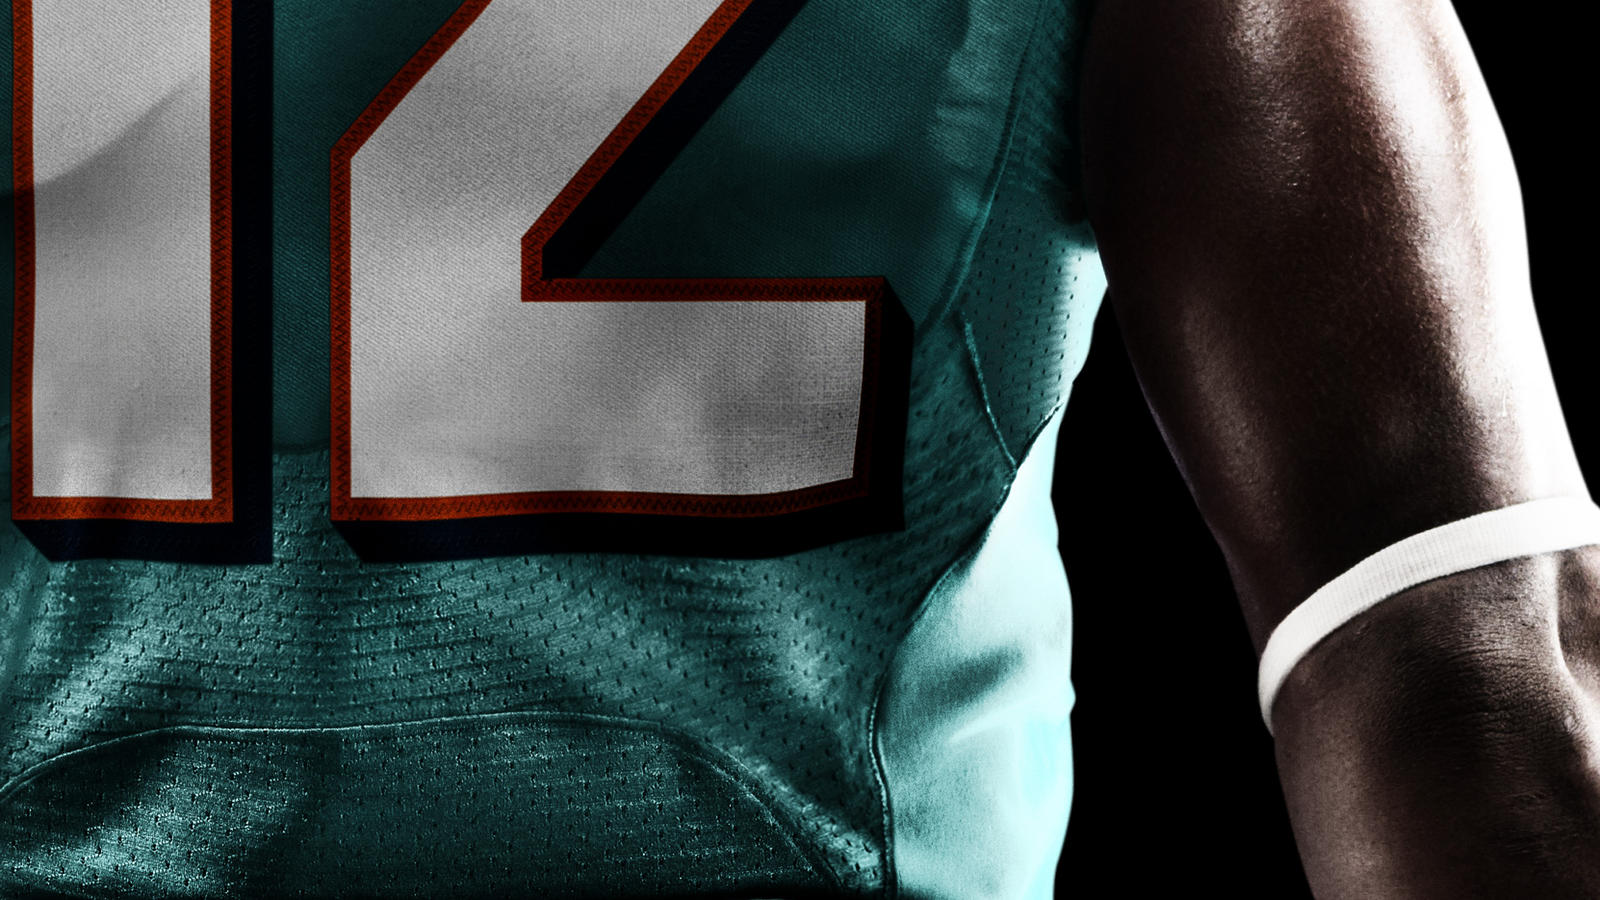 SU12_AT_NFL_UNIFORM_ZONE_VENT_DOLPHINS